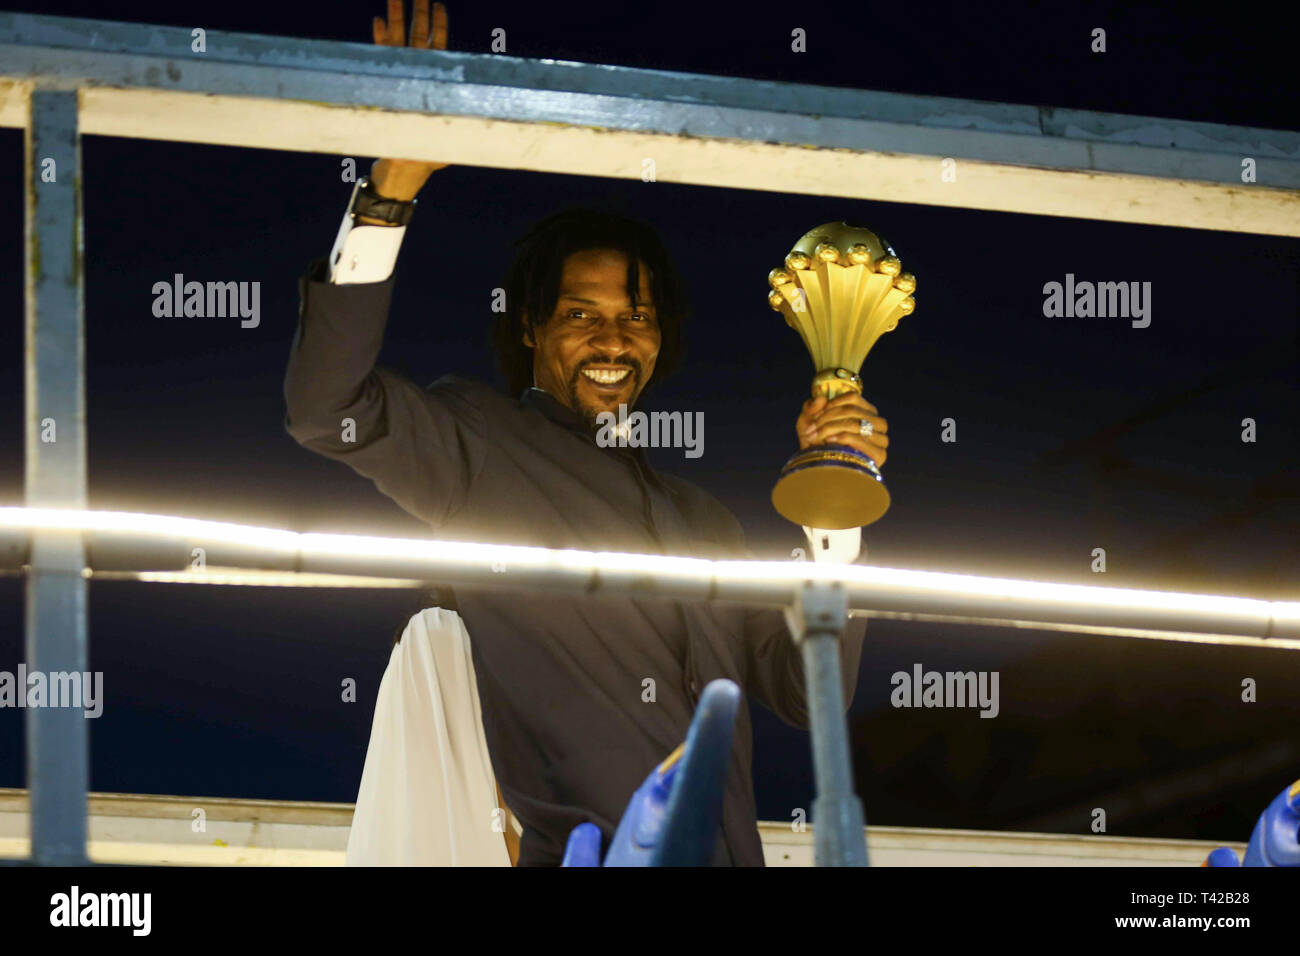 Cairo, Egypt. 12th Apr, 2019. Retired Cameroonian footballer Rigobert Song waves on top of an open top bus while holding the Africa Cup of Nations (AFCON) trophy during a tour in the streets of Cairo ahead of the 2019 Africa Cup of Nations draw, which to take place at the Pyramids of Giza. Credit: Hassan Mohamed/dpa/Alamy Live News - Stock Image